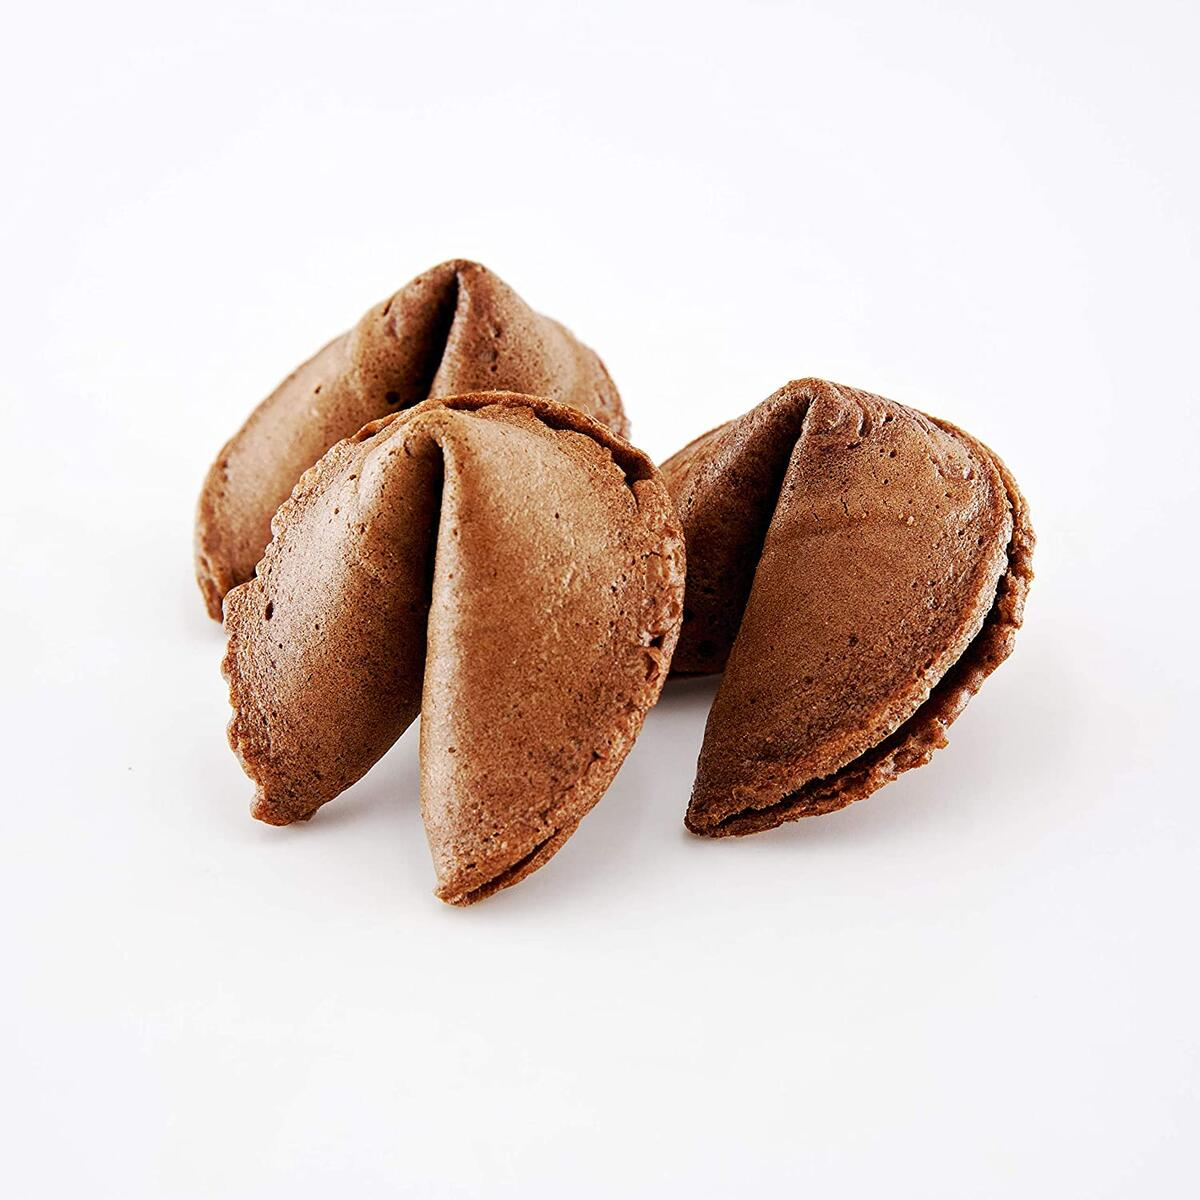 Sky | Premium and Fresh Chocolate Fortune Cookies Individually Wrapped, Bulk Pack, Perfect for Snacks, Lunch, Picnic, Birthdays, Graduation, Parties, Product of USA (Chocolate, 50 Cookies)